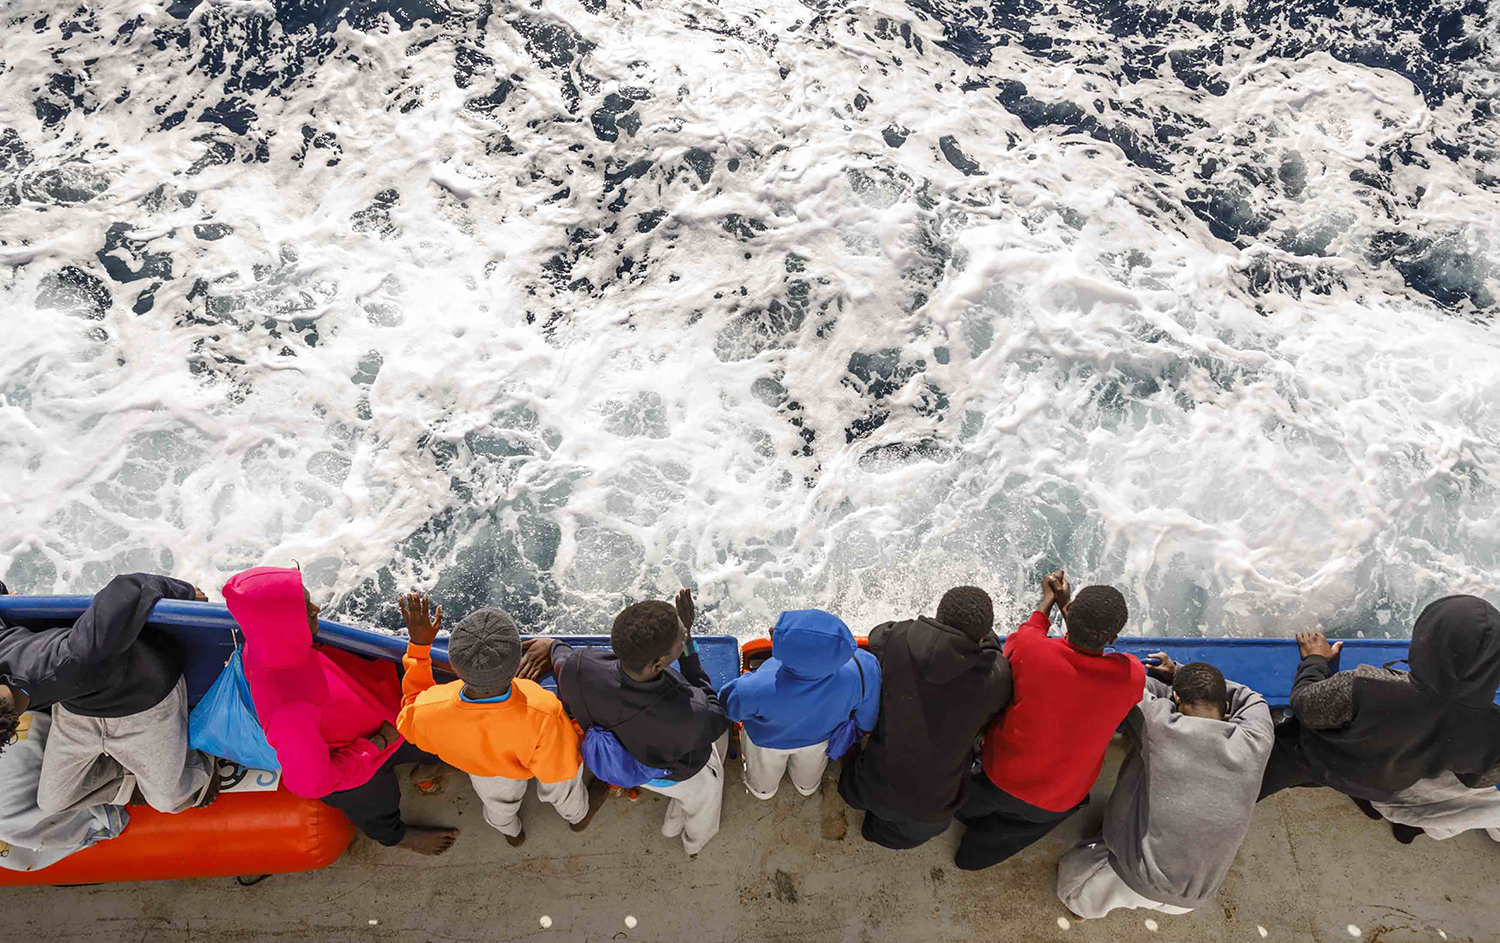 A group of migrants travel on board a rescue boat on Feb. 10, one day after their rescue off the Libyan coast. Ninety-three migrants from Mali, Ivory Coast, and Cameroon were rescued by the Spanish NGO Maydayterraneo in the central Mediterranean. PABLO GARCIA/AFP via Getty Images